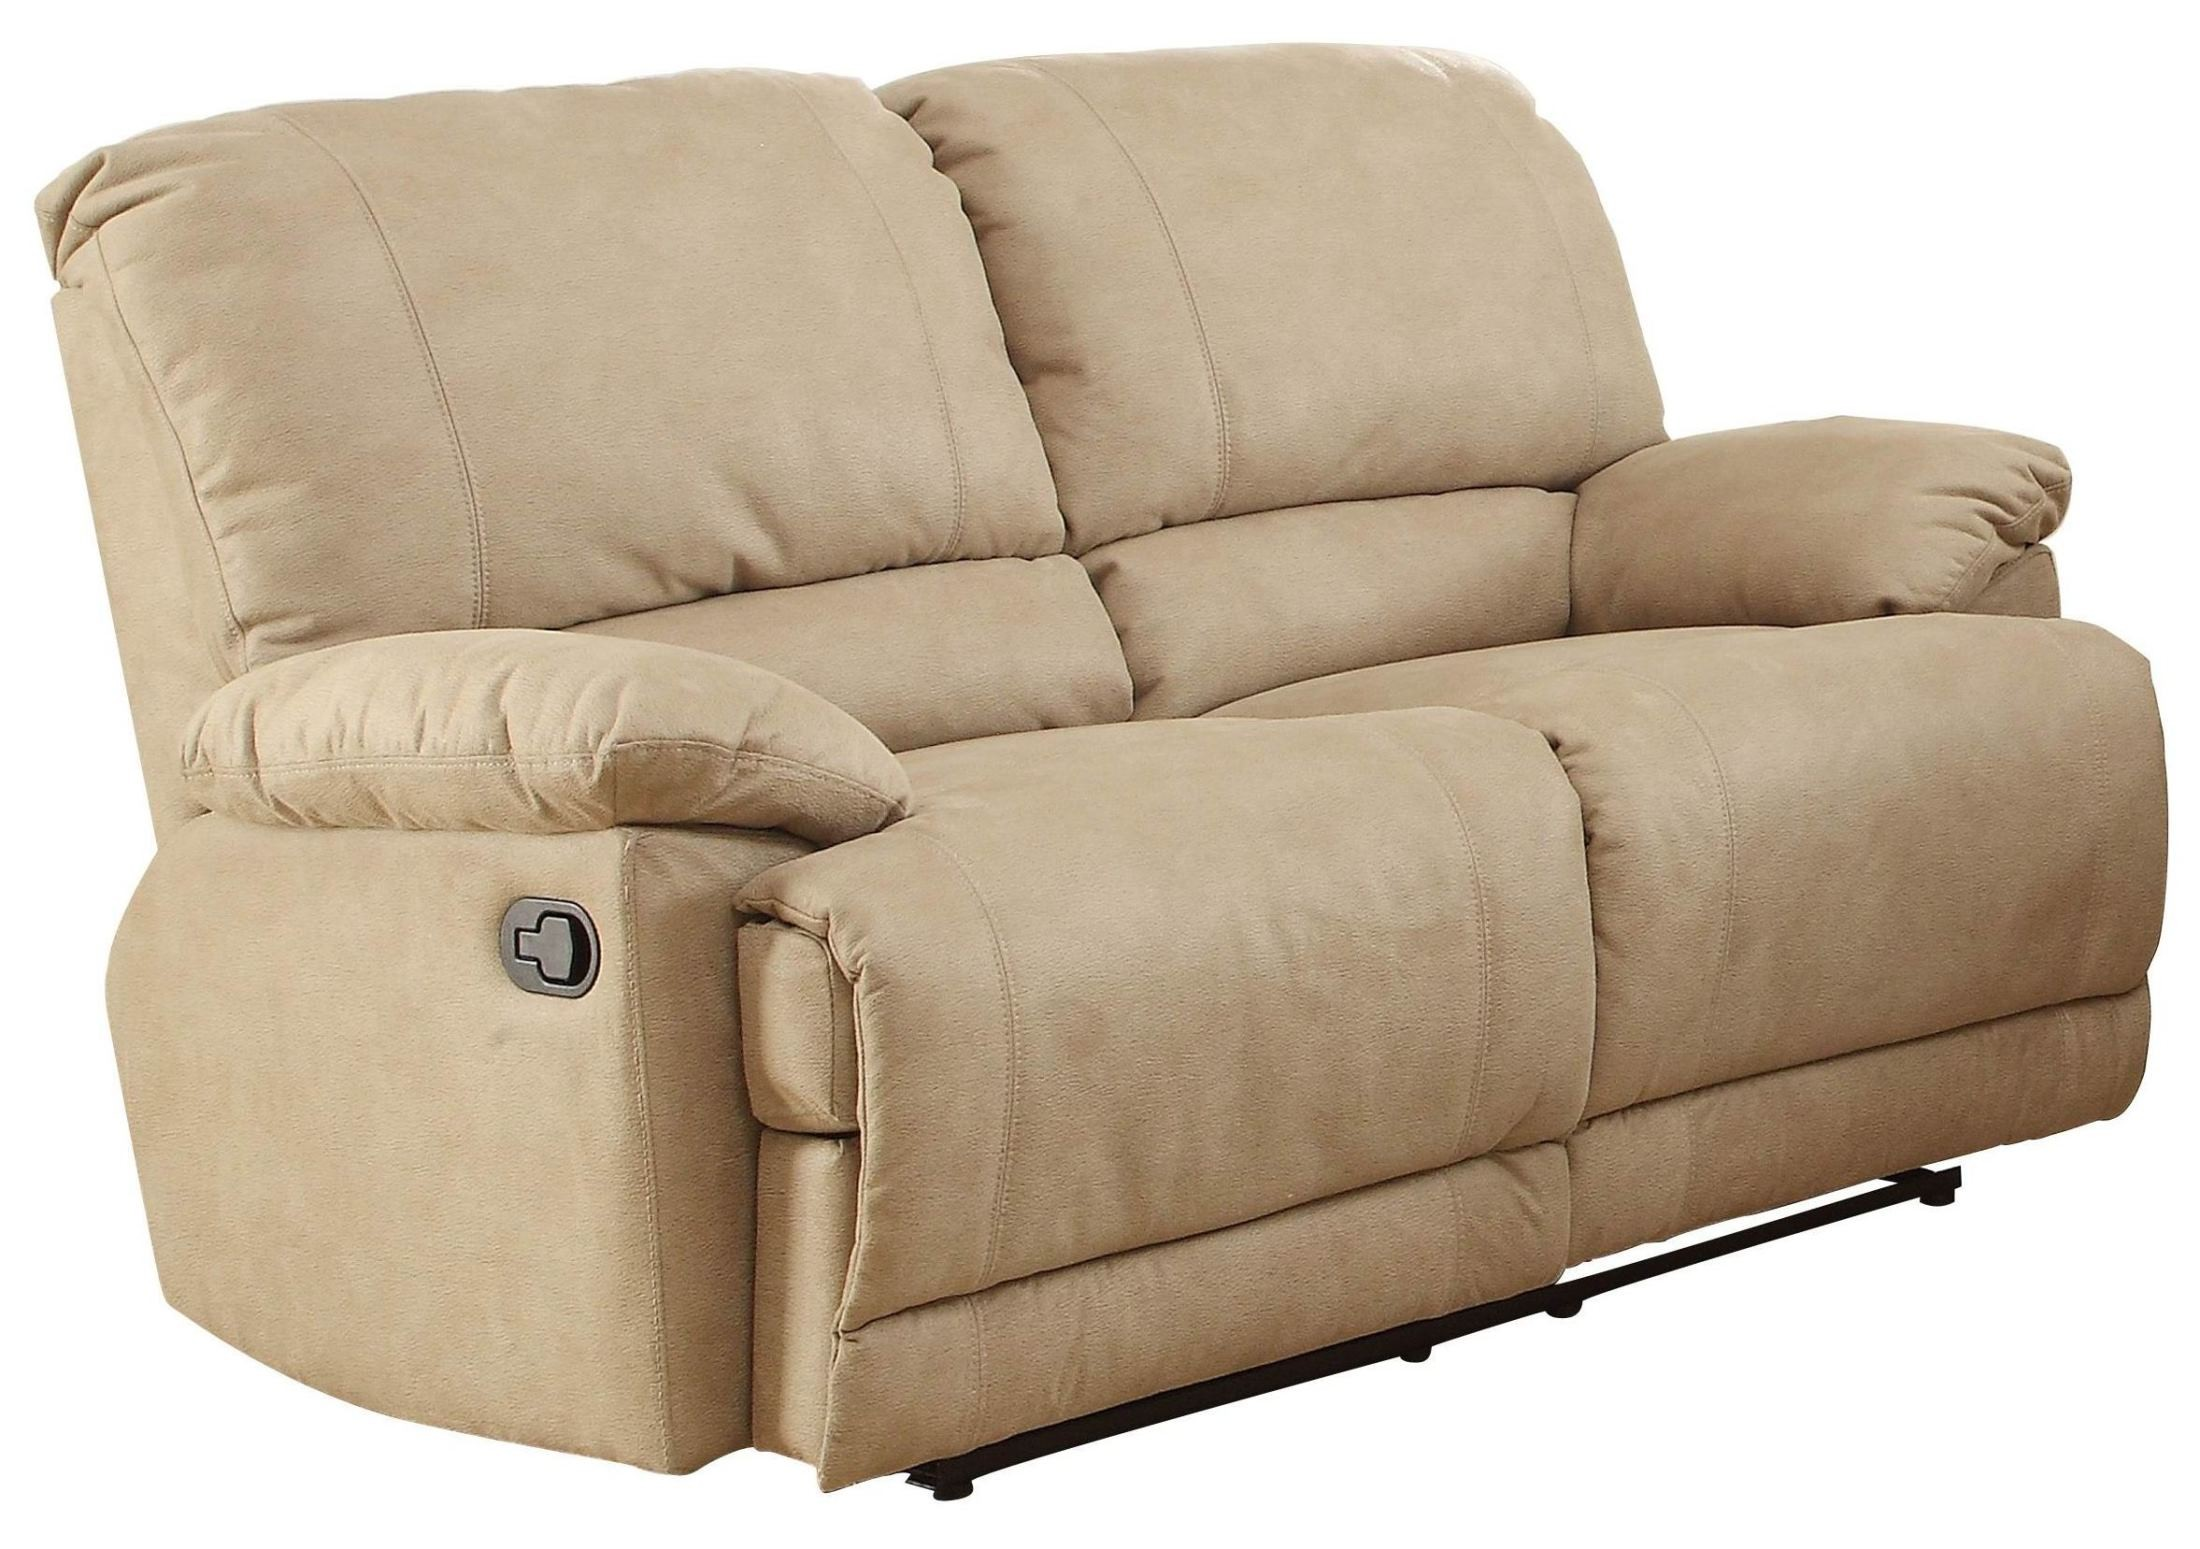 Elsie Double Reclining Loveseat 9713nf 2 Homelegance